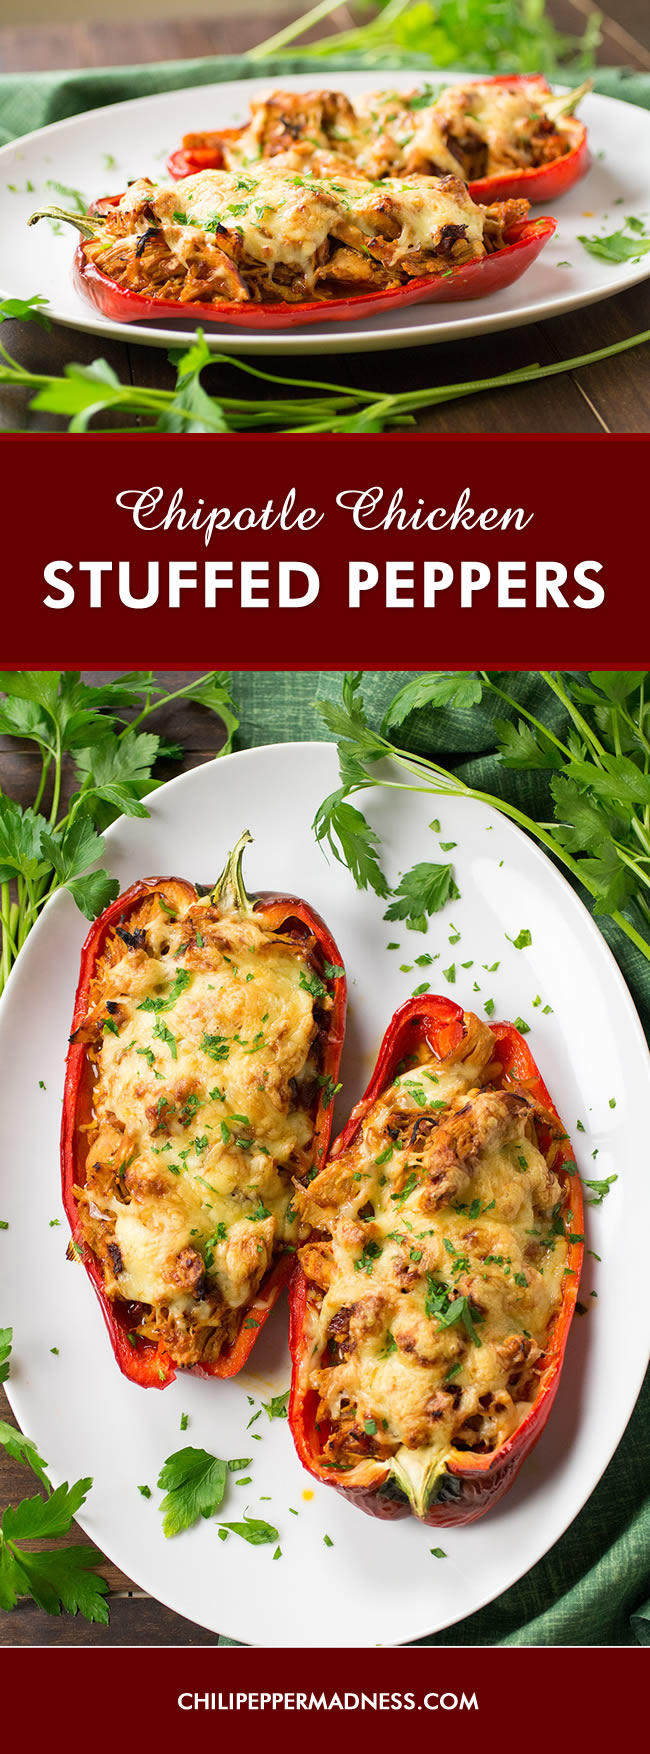 Chipotle Chicken Stuffed Peppers - Recipe